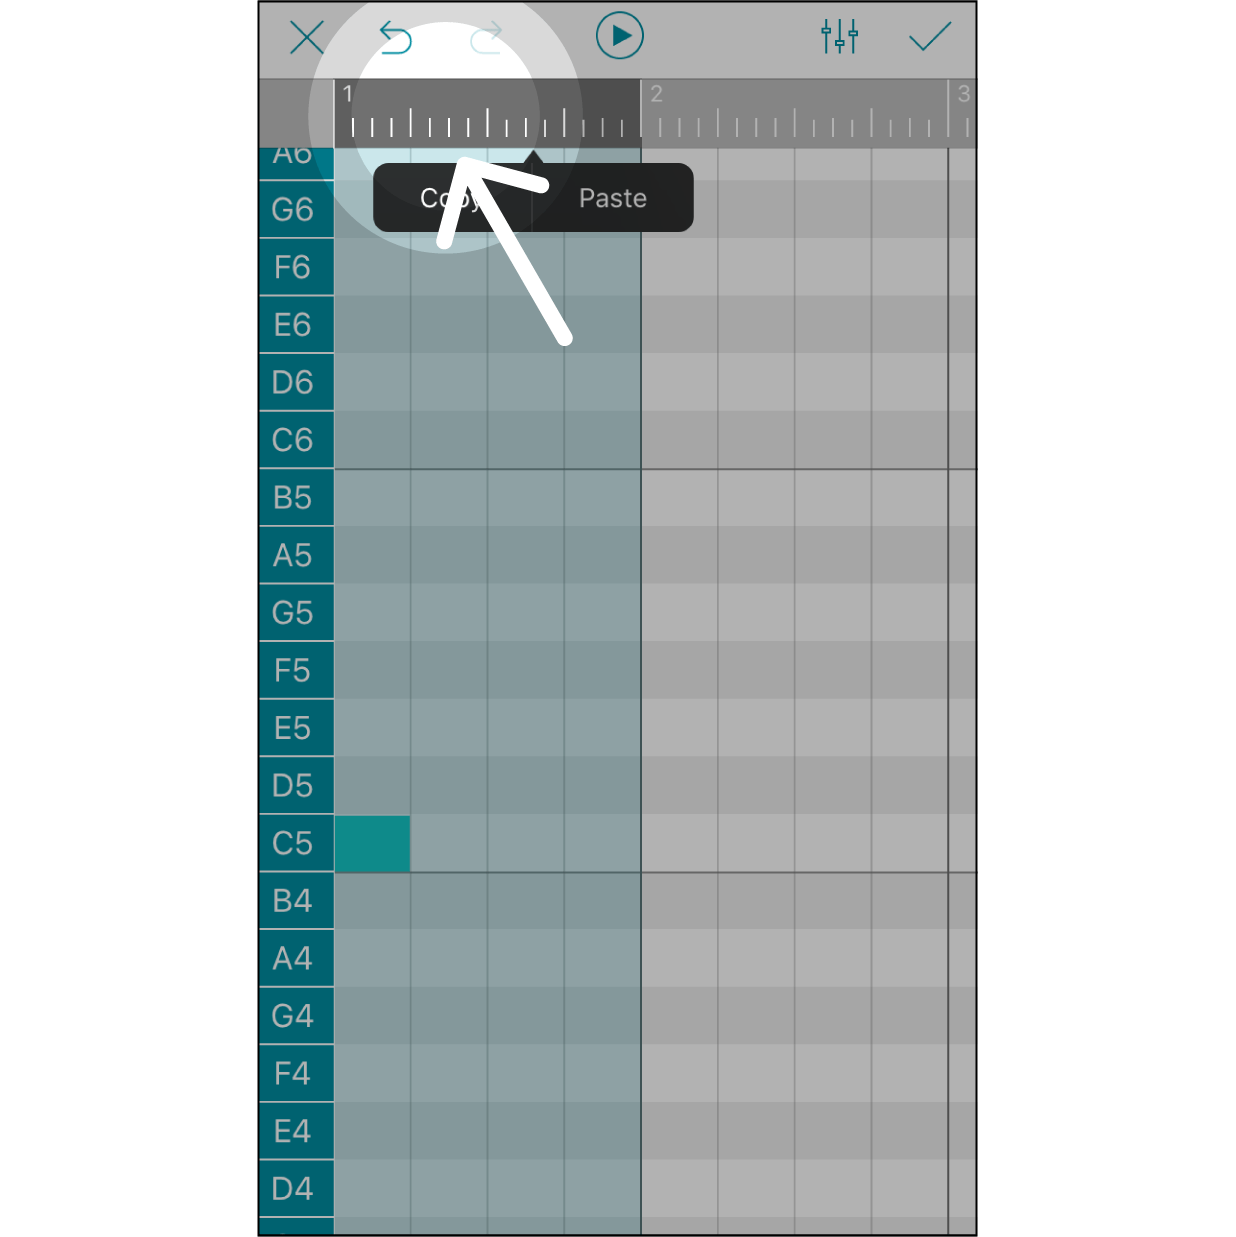 Select a SectionPress on the grey bar to select a section for editing. The first click will select a section of one beat. The numbers on this grey bar indicate which beat in the melody is being edited.